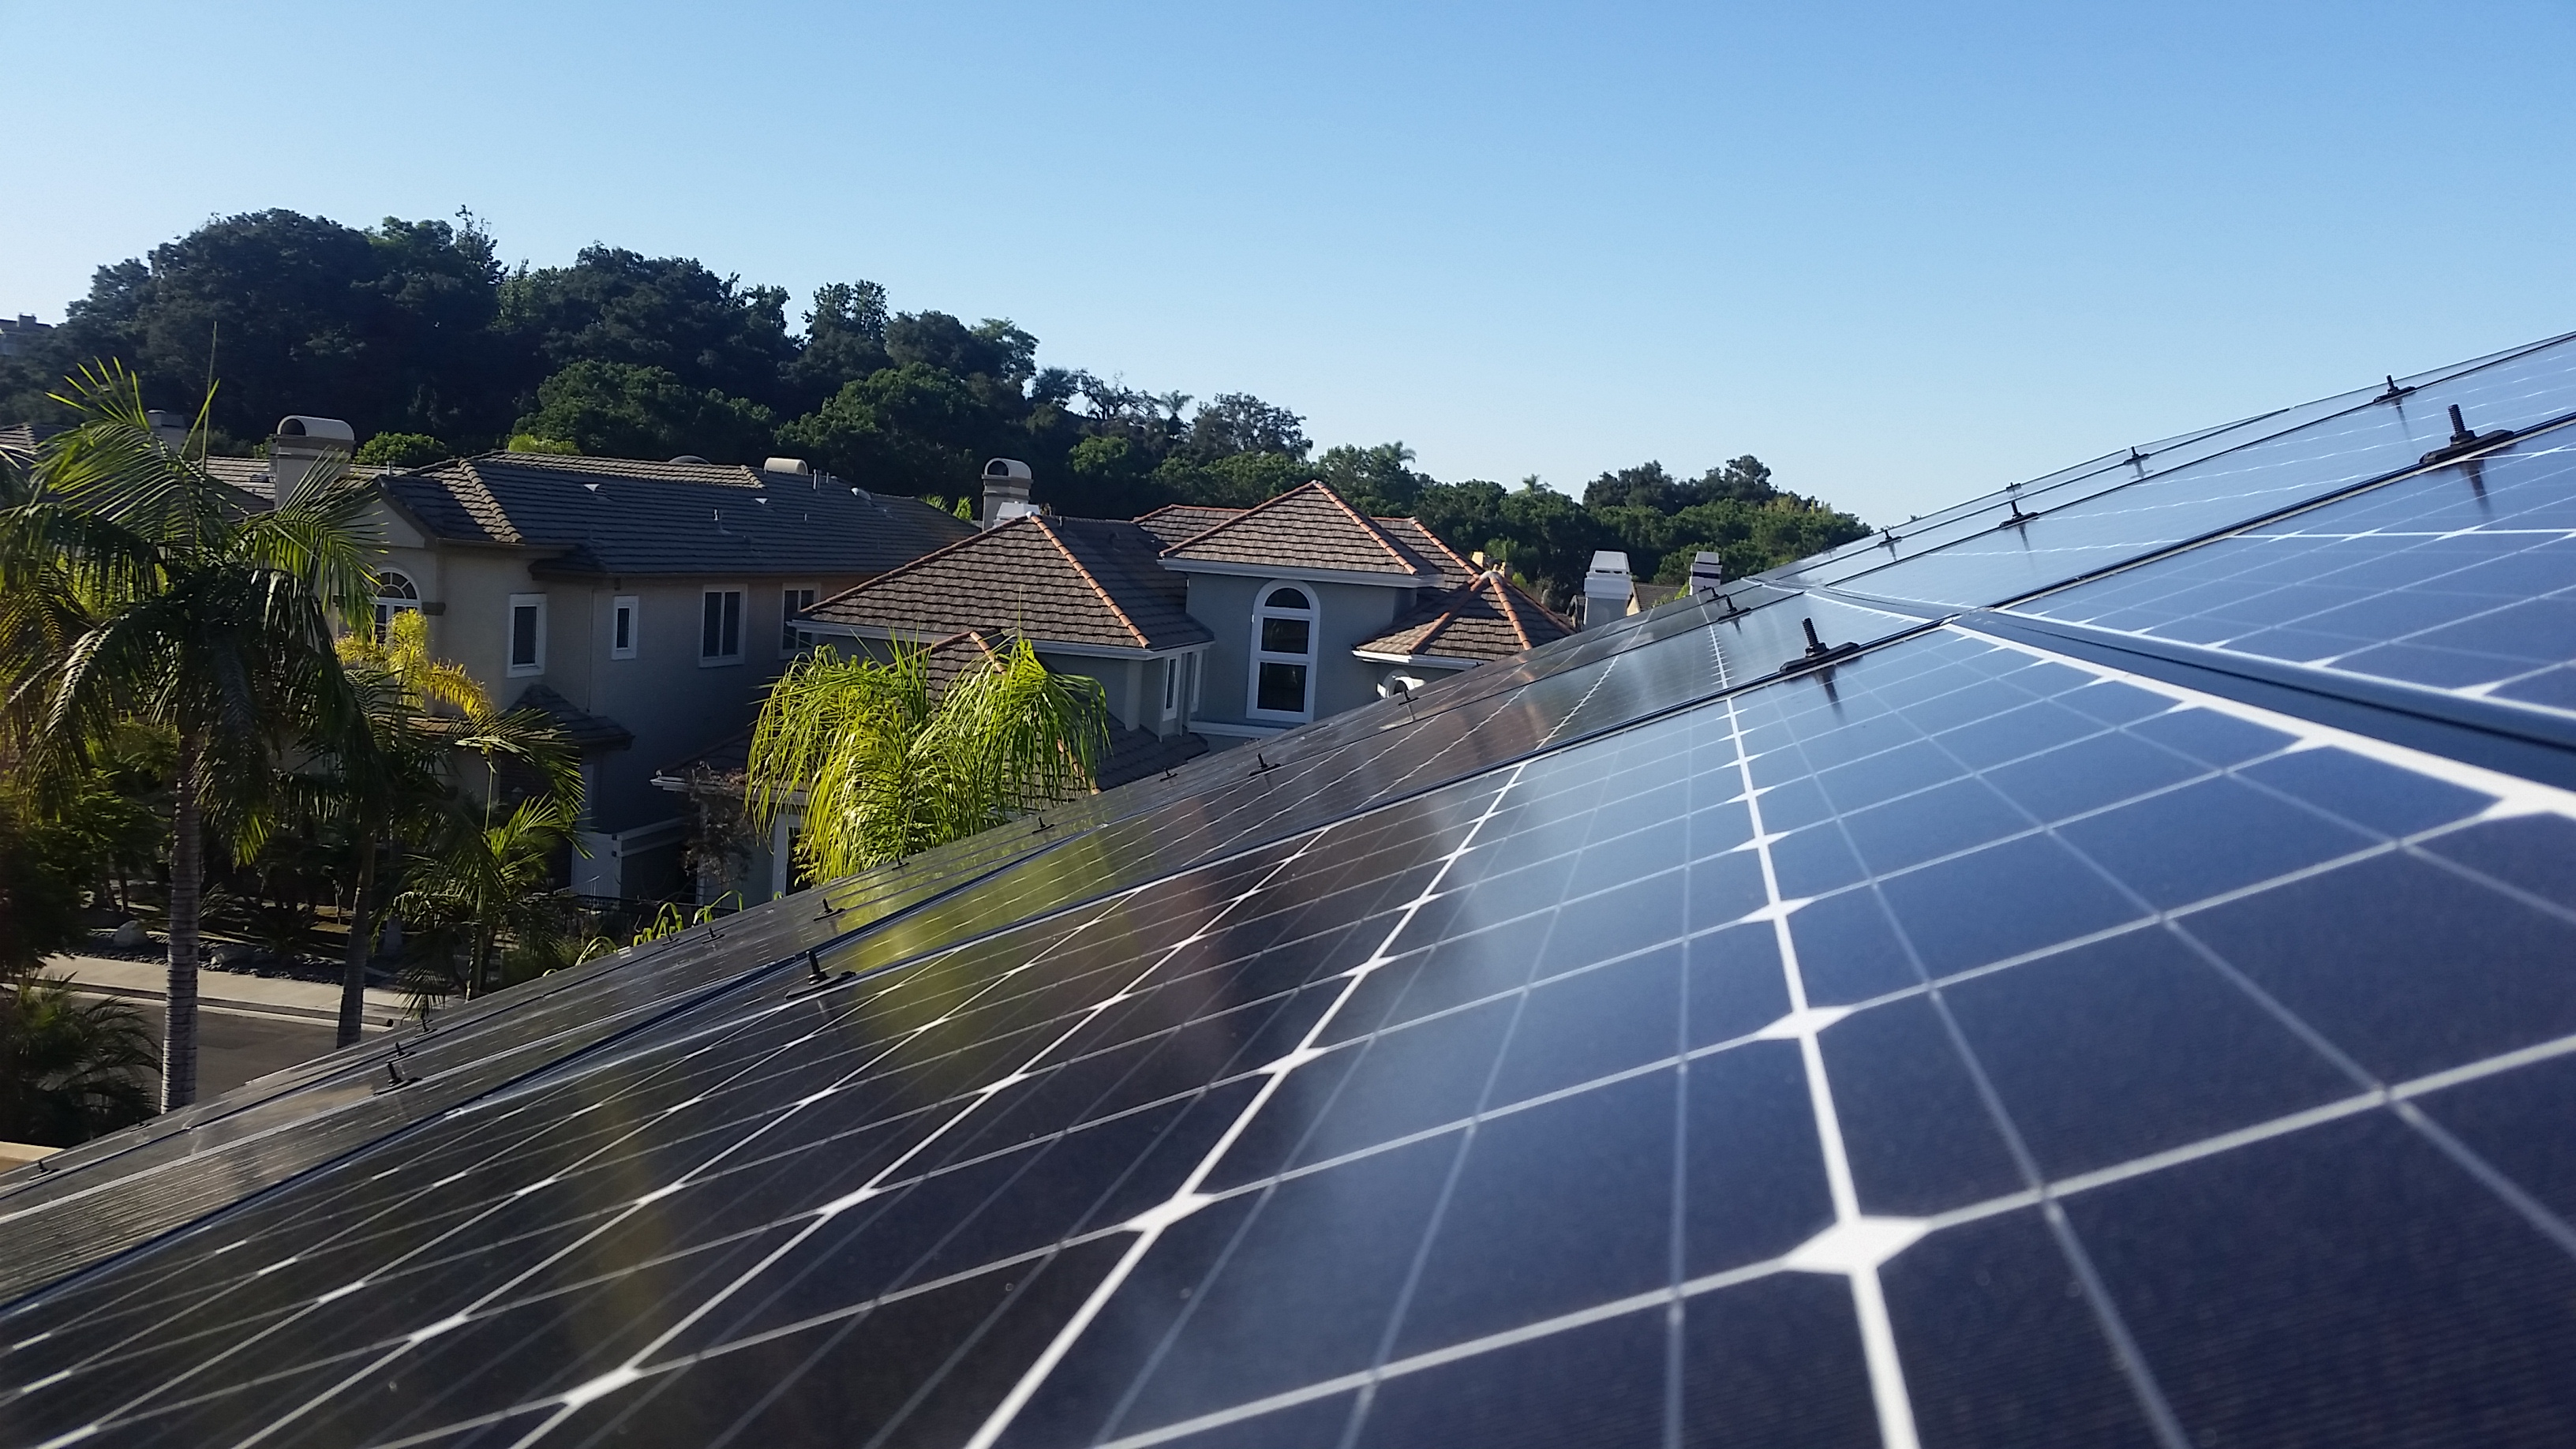 Renewable energy advocates say a locally run Community Choice Energy program could be the wave of the future for cities and the region to harness cleaner, more affordable energy for residents and businesses. Photo: Courtesy of Sullivan Solar Power